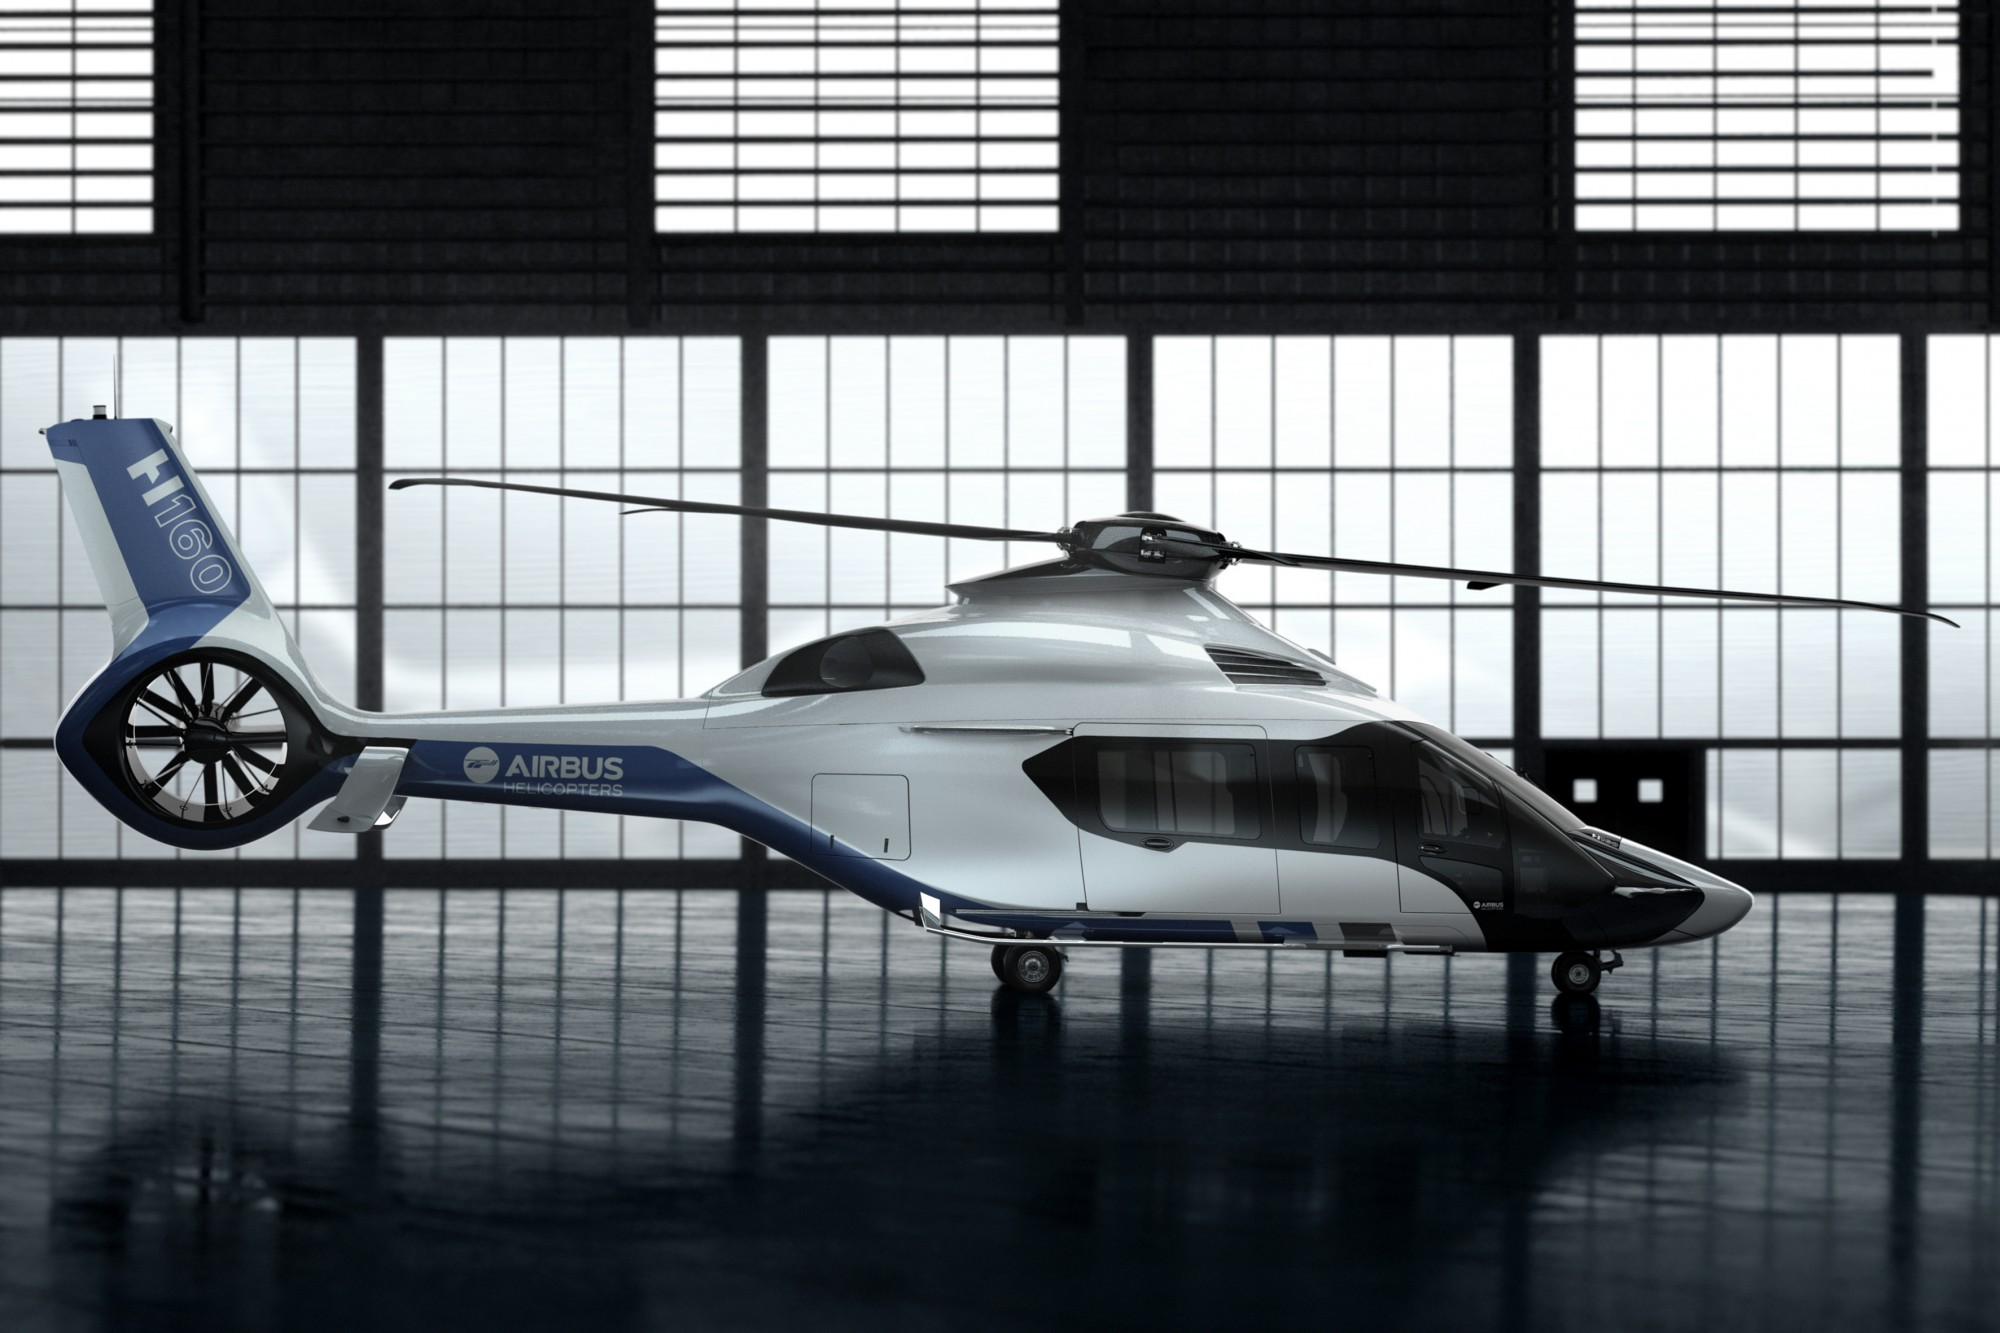 heliexpo2015 airbus h160 x4 unveiled helinews news gathering page. Black Bedroom Furniture Sets. Home Design Ideas